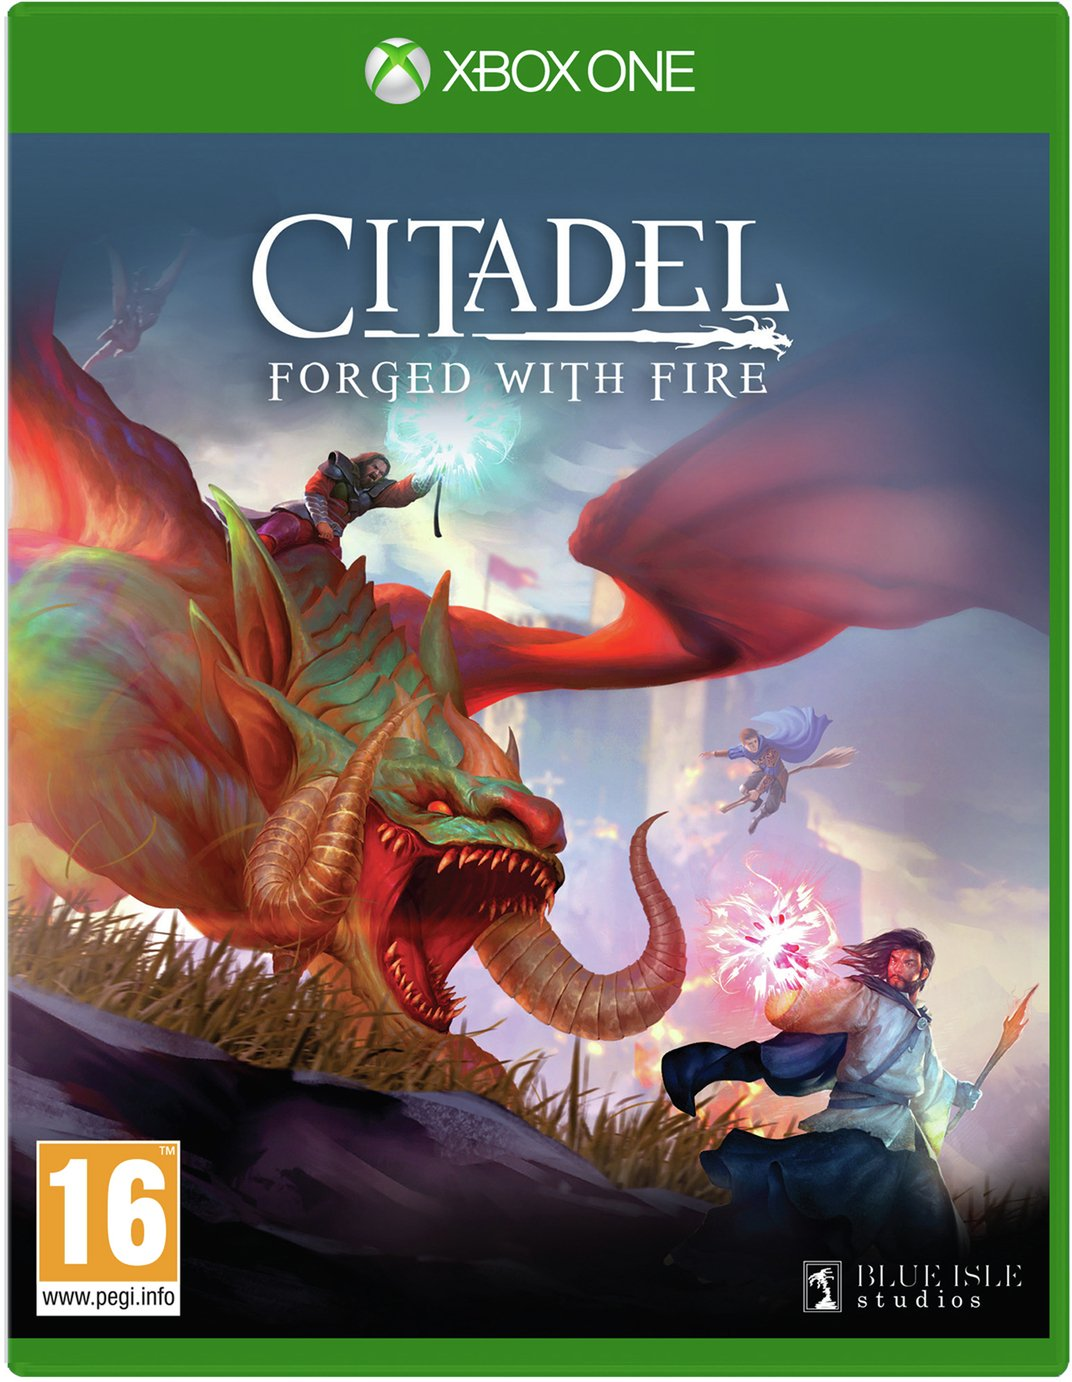 Citadel: Forged with Fire Xbox One Pre-Order Game